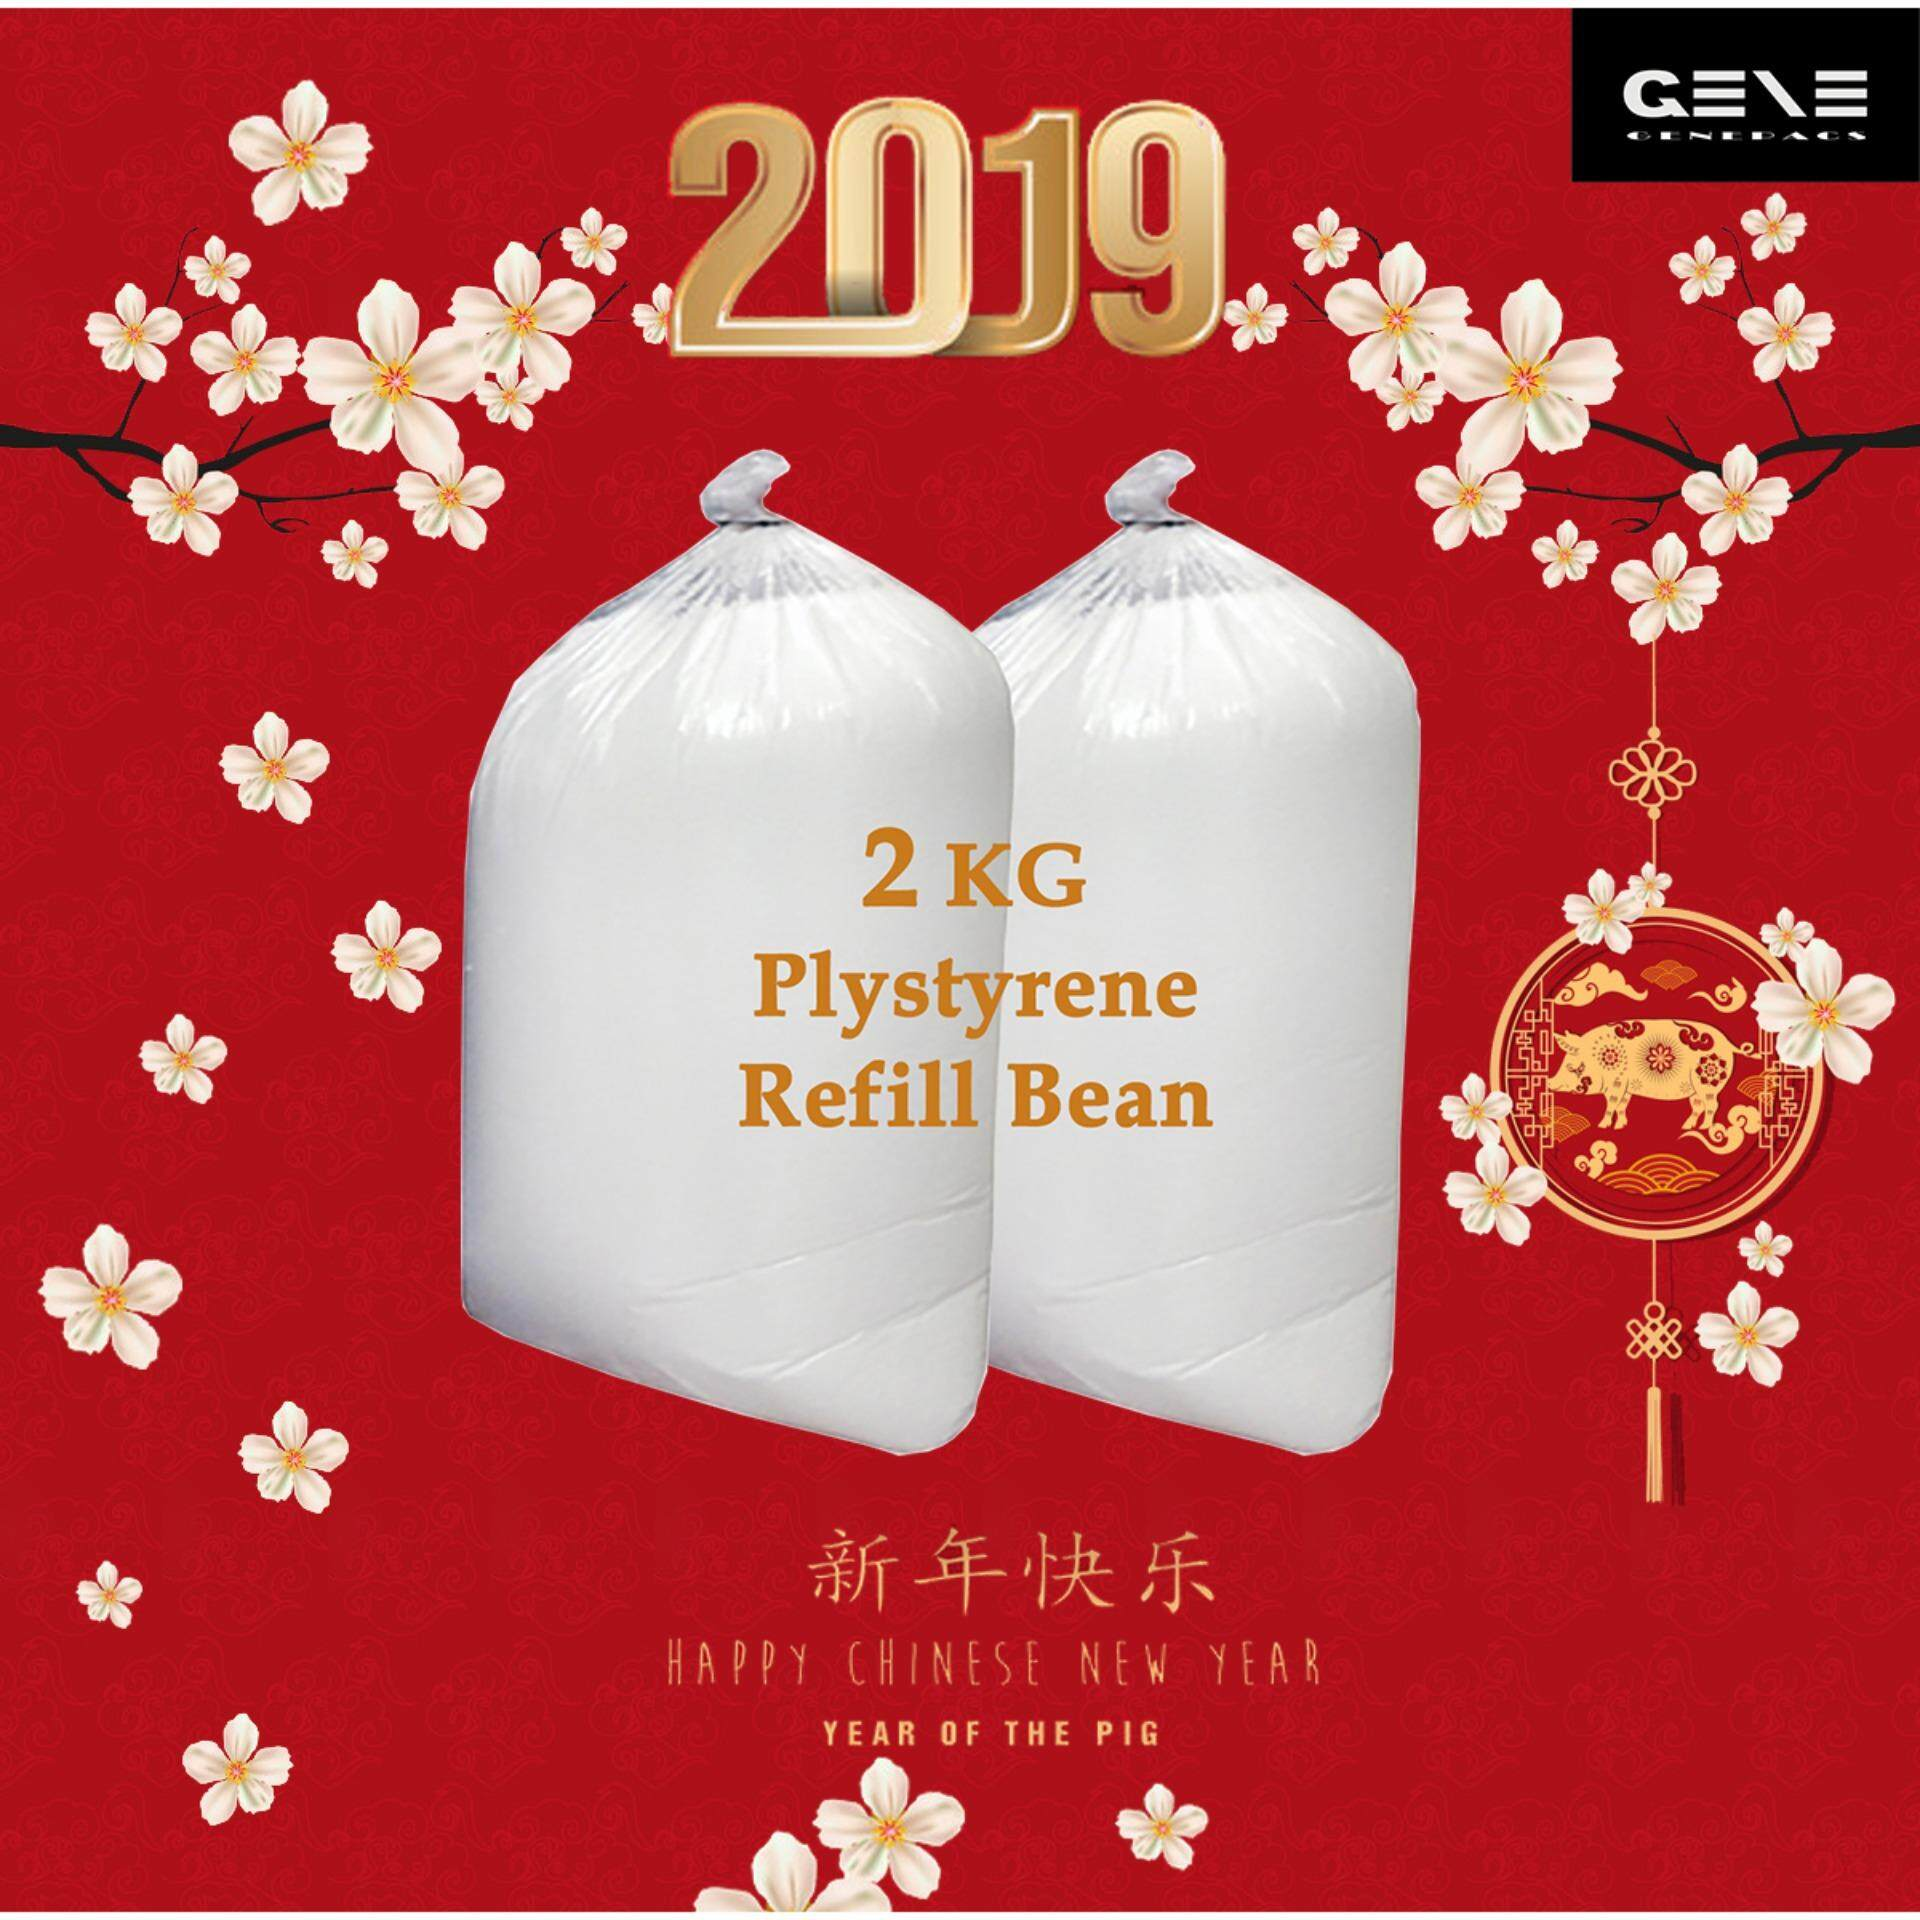 Genespac 2kg Premium Quality Polystyrene Refill Bean Beads For Bean Bag By Genespac Distribution.